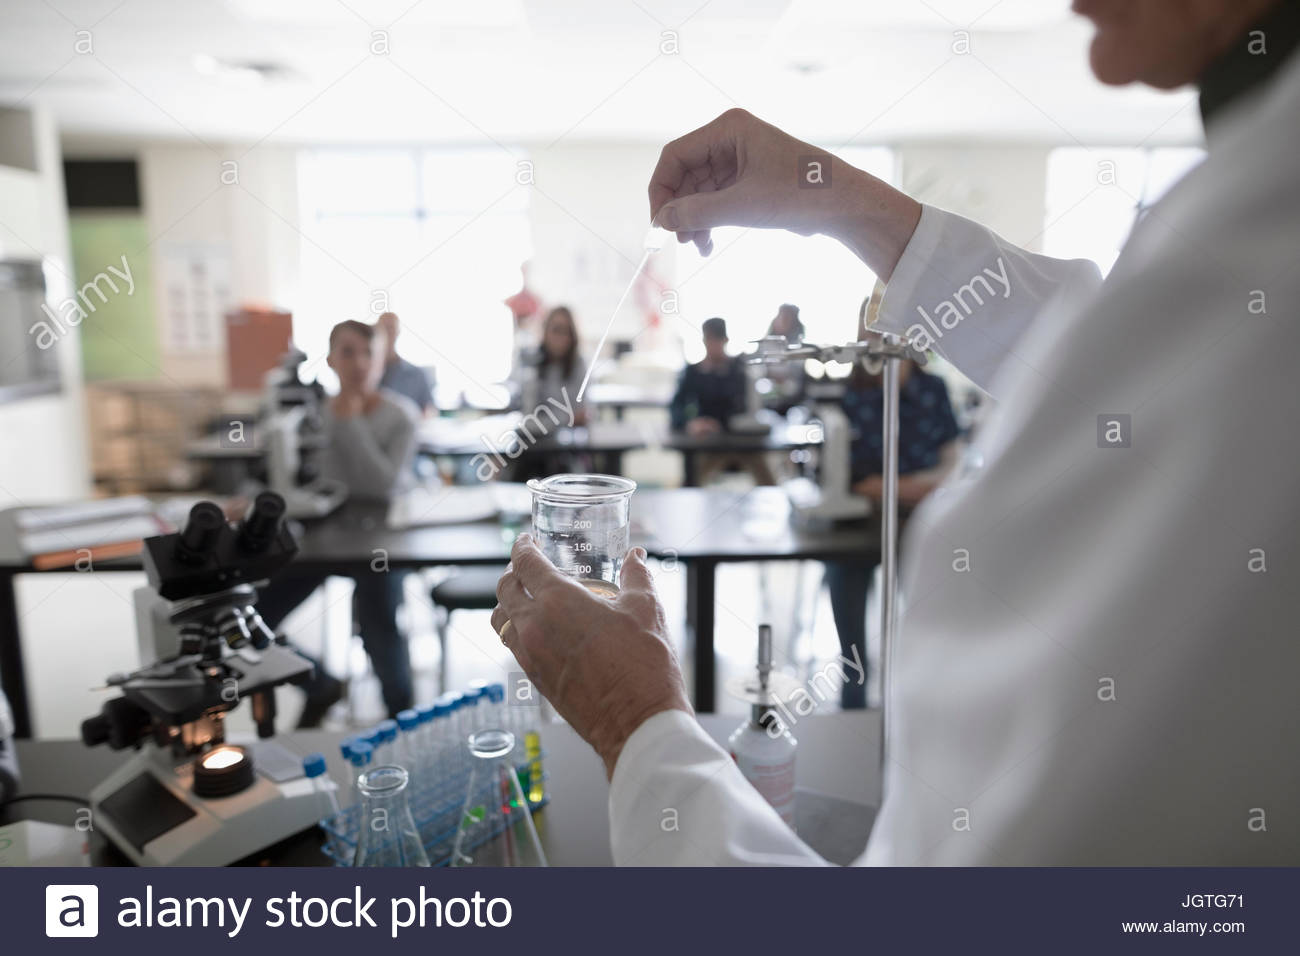 Students watching science teacher conducting scientific experiment in laboratory - Stock Image